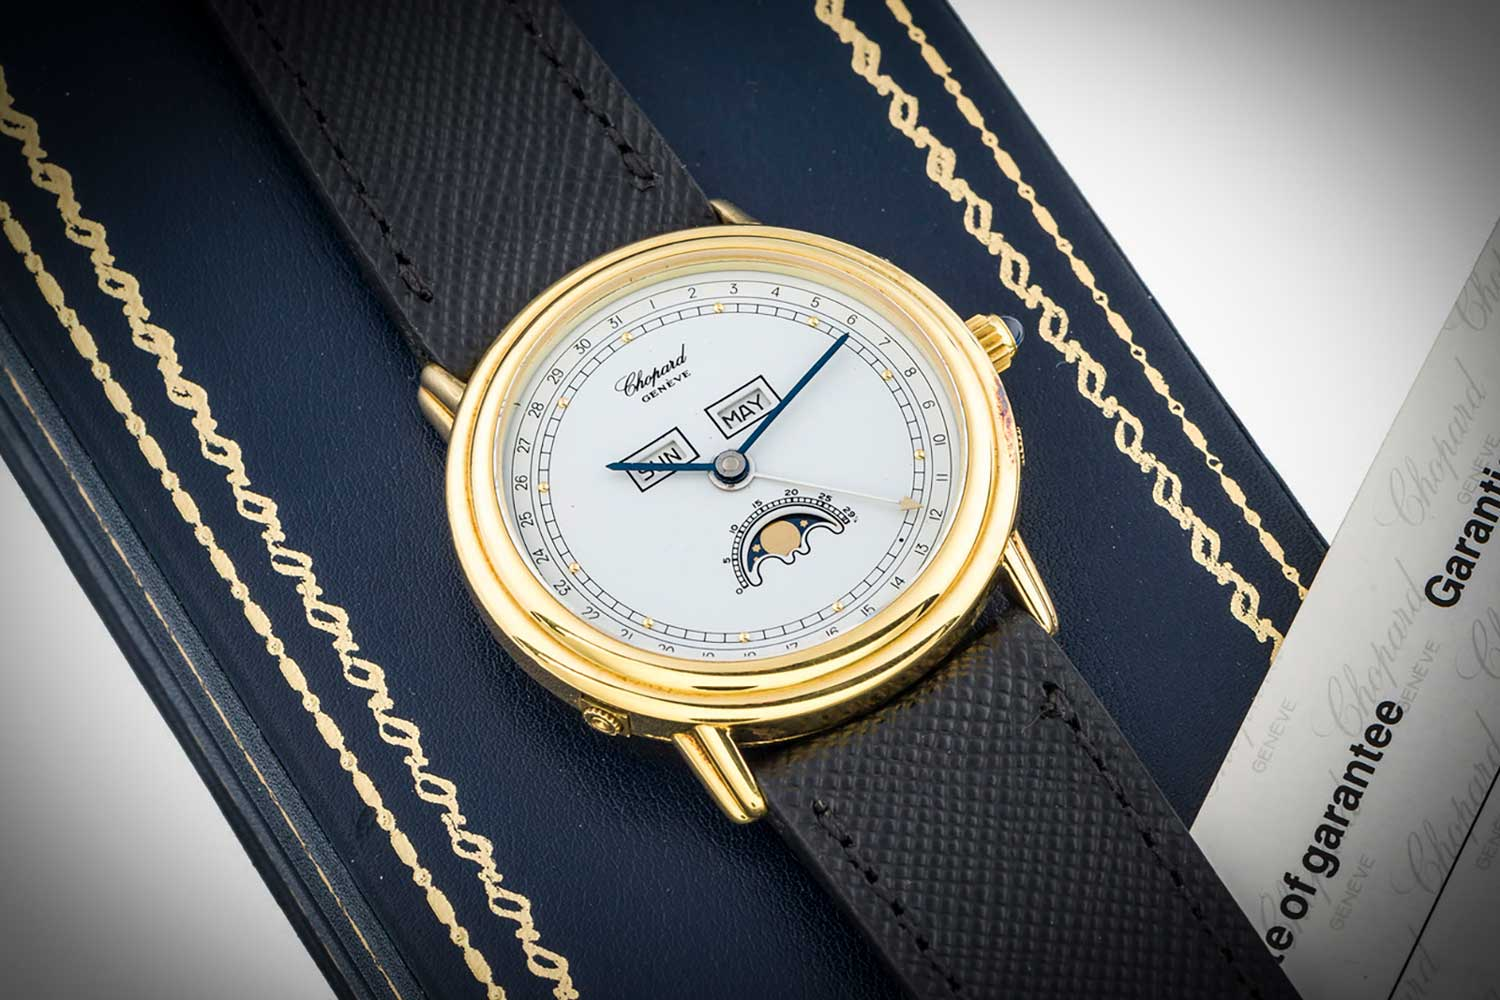 A triple date moonphase watch by Chopard from 1990. Chopard began creating such timepieces from 1984 onwards. (Image by Antiquorum)